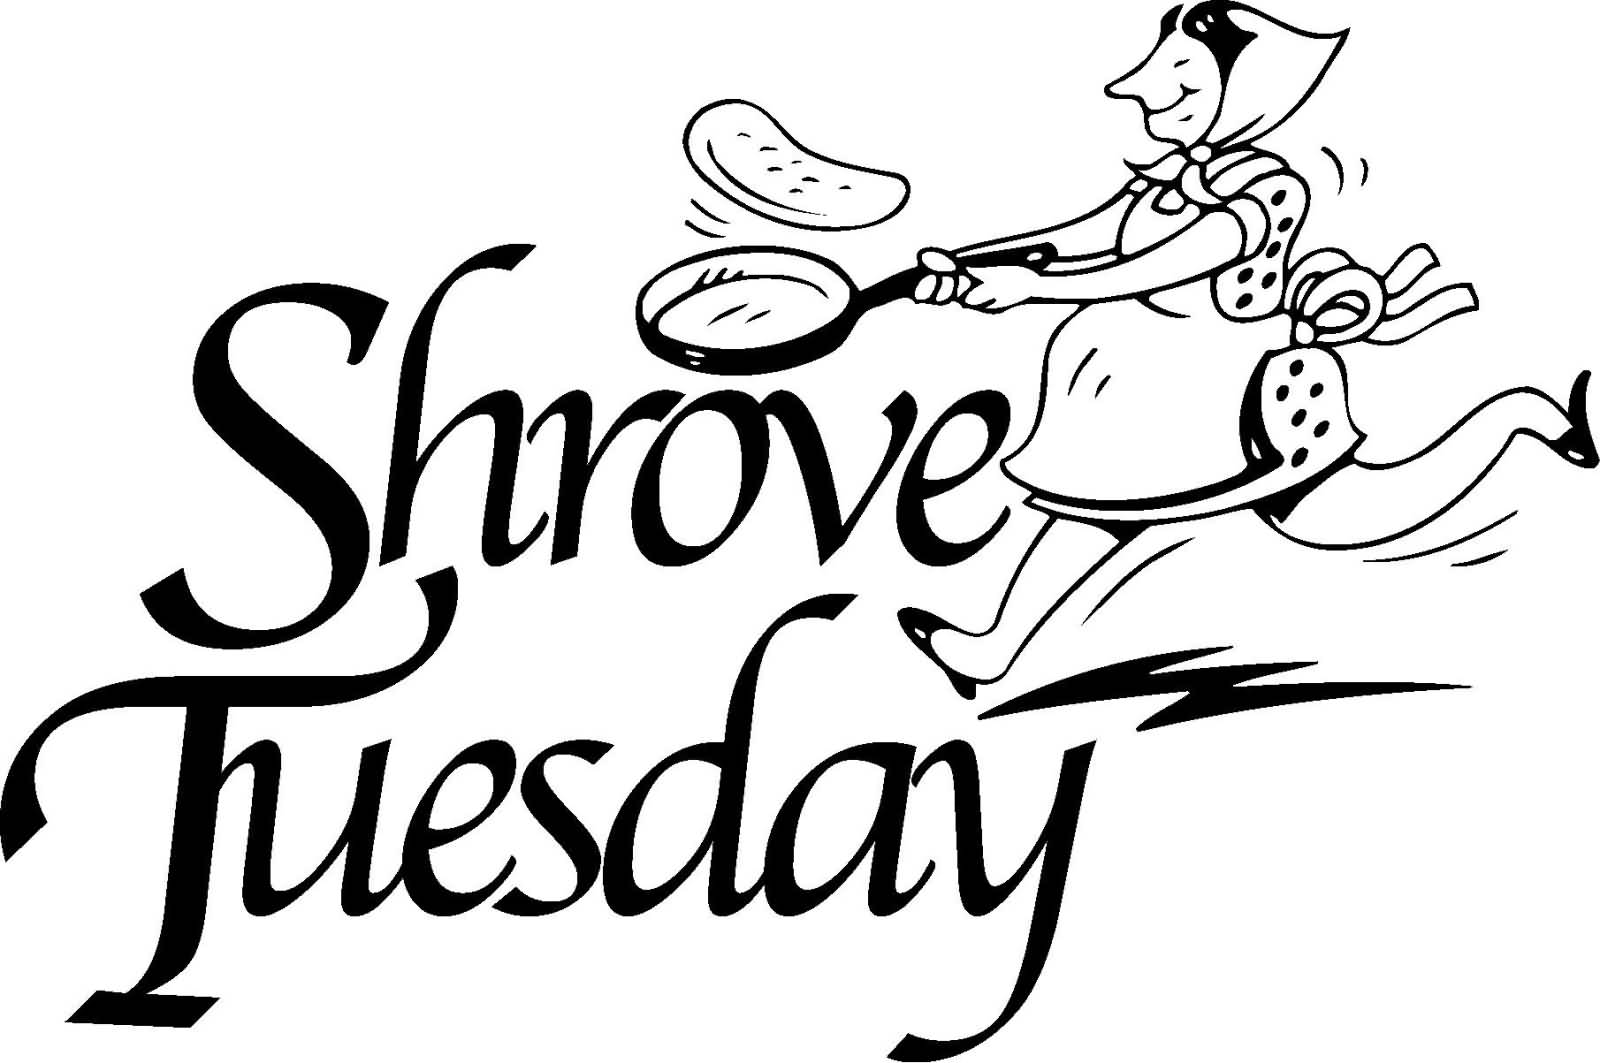 Shrove Tuesday Tossing Pancakes Black And White Clipart